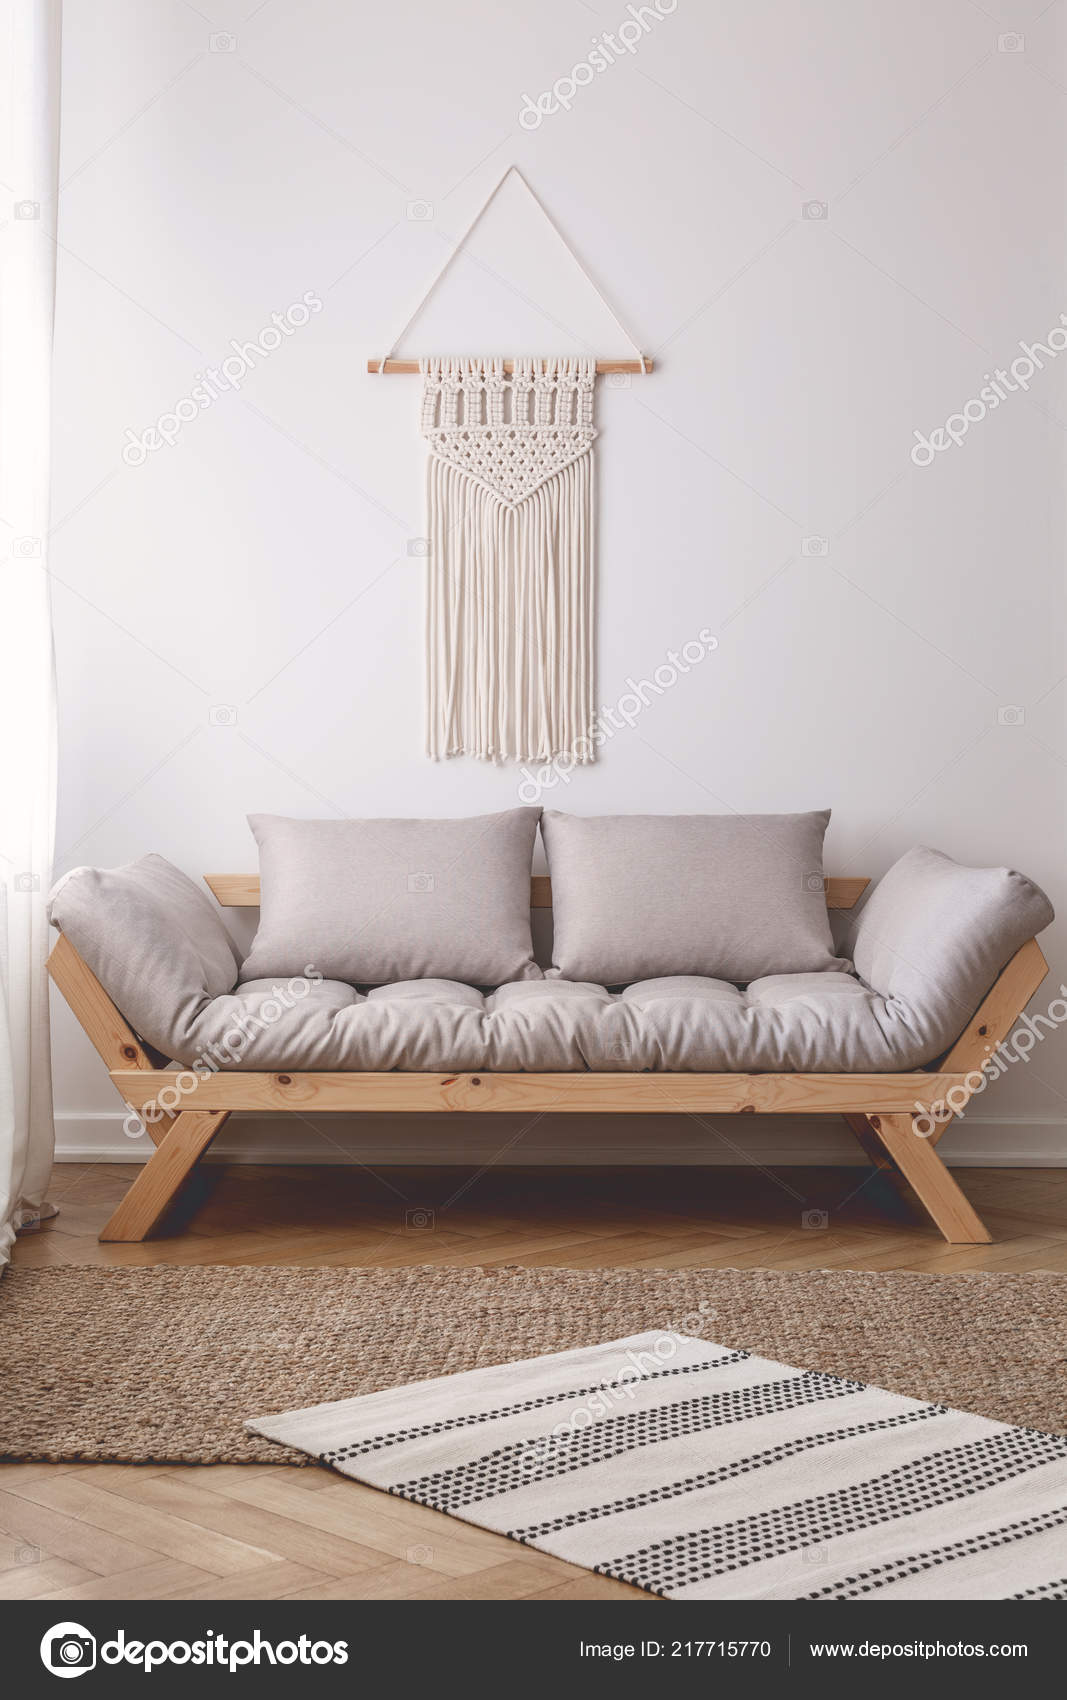 Beige Wooden Couch Pillows Simple White Living Room Interior Rug Stock Photo C Photographee Eu 217715770